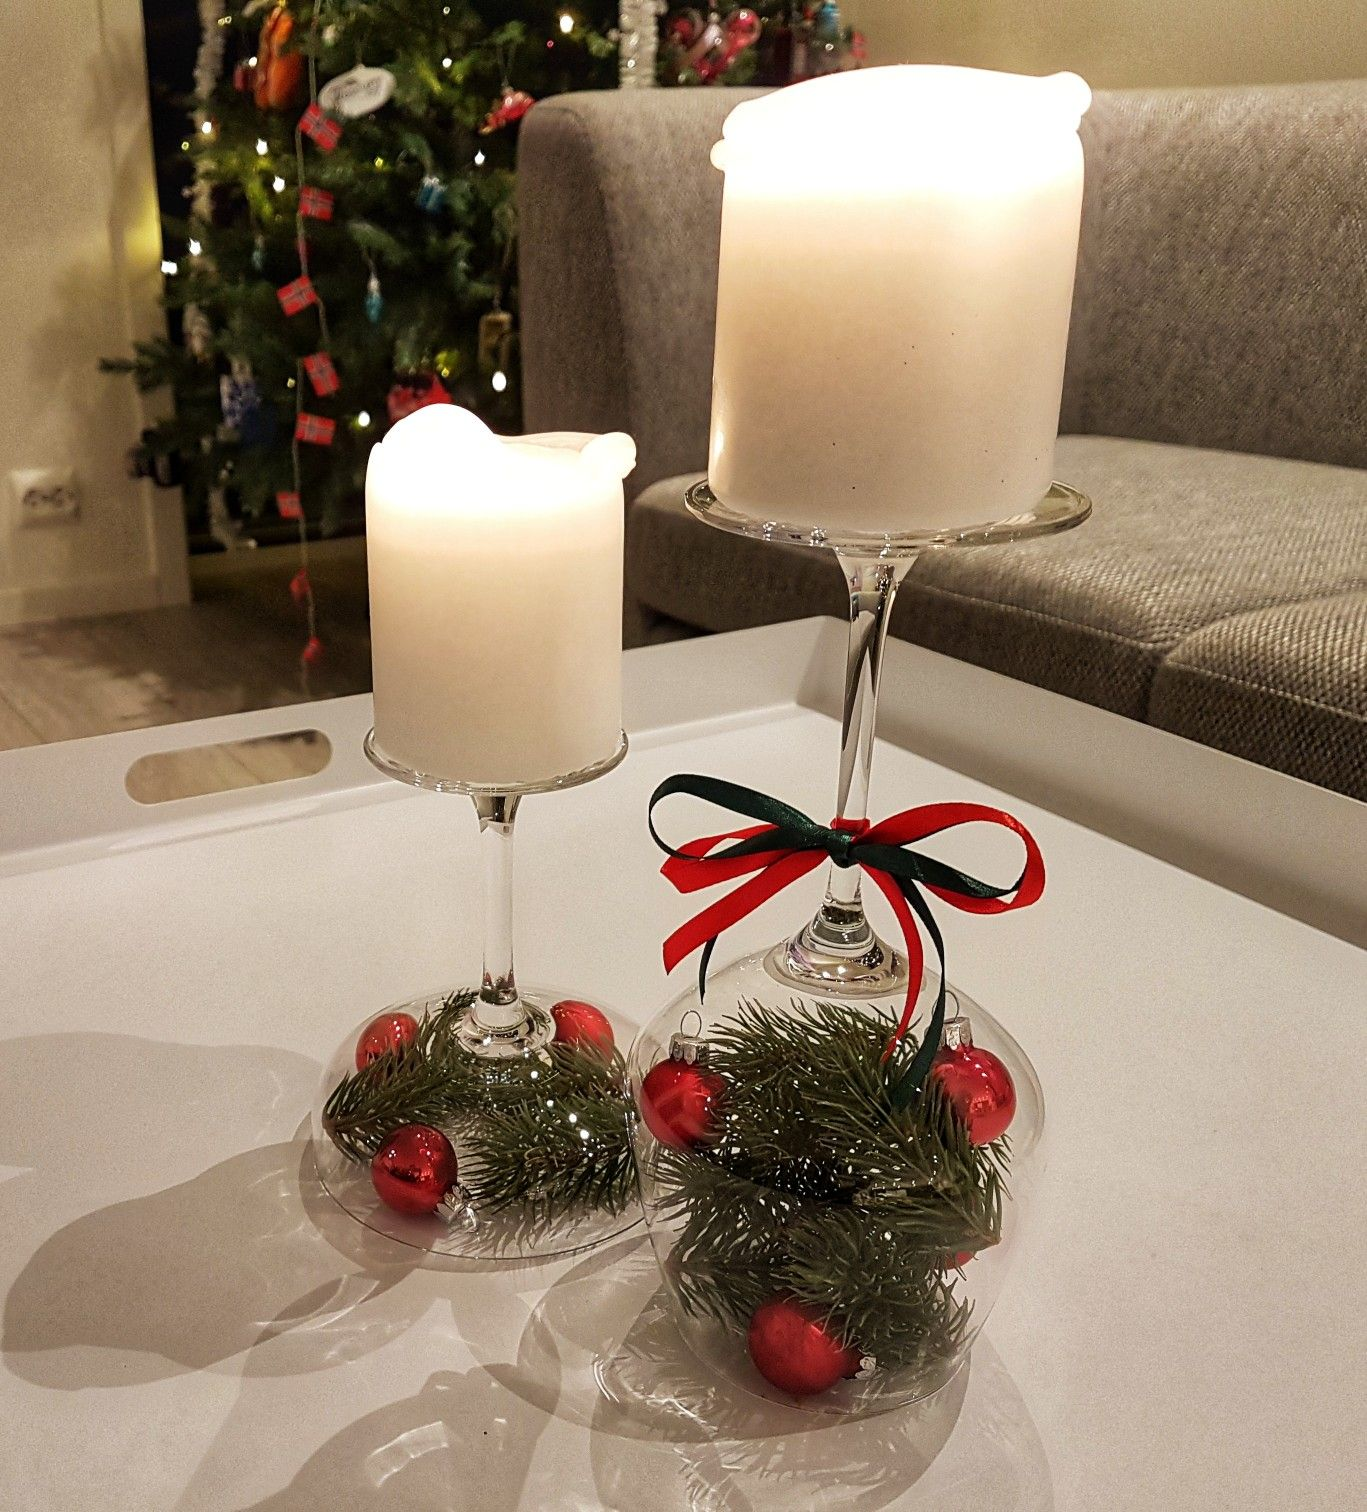 Easy To Make Christmas Decorations Made Using Wine Glasses The Perfect Last Minut Christmas Candle Holders Diy Christmas Table Decorations Diy Christmas Table